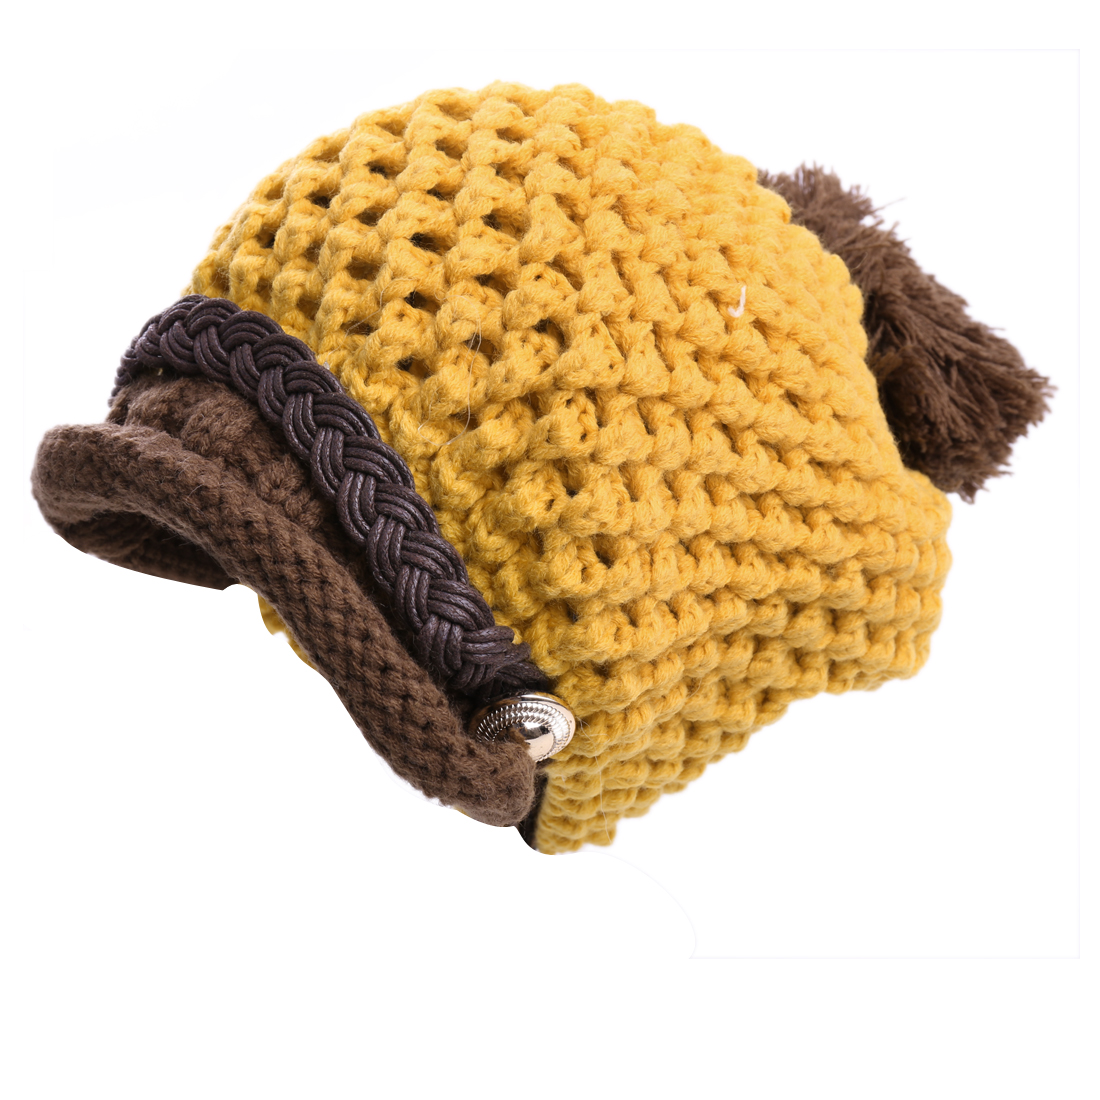 Chic Contrast Color Yellow Brown Winter Cable-Knitted Hat for Lady